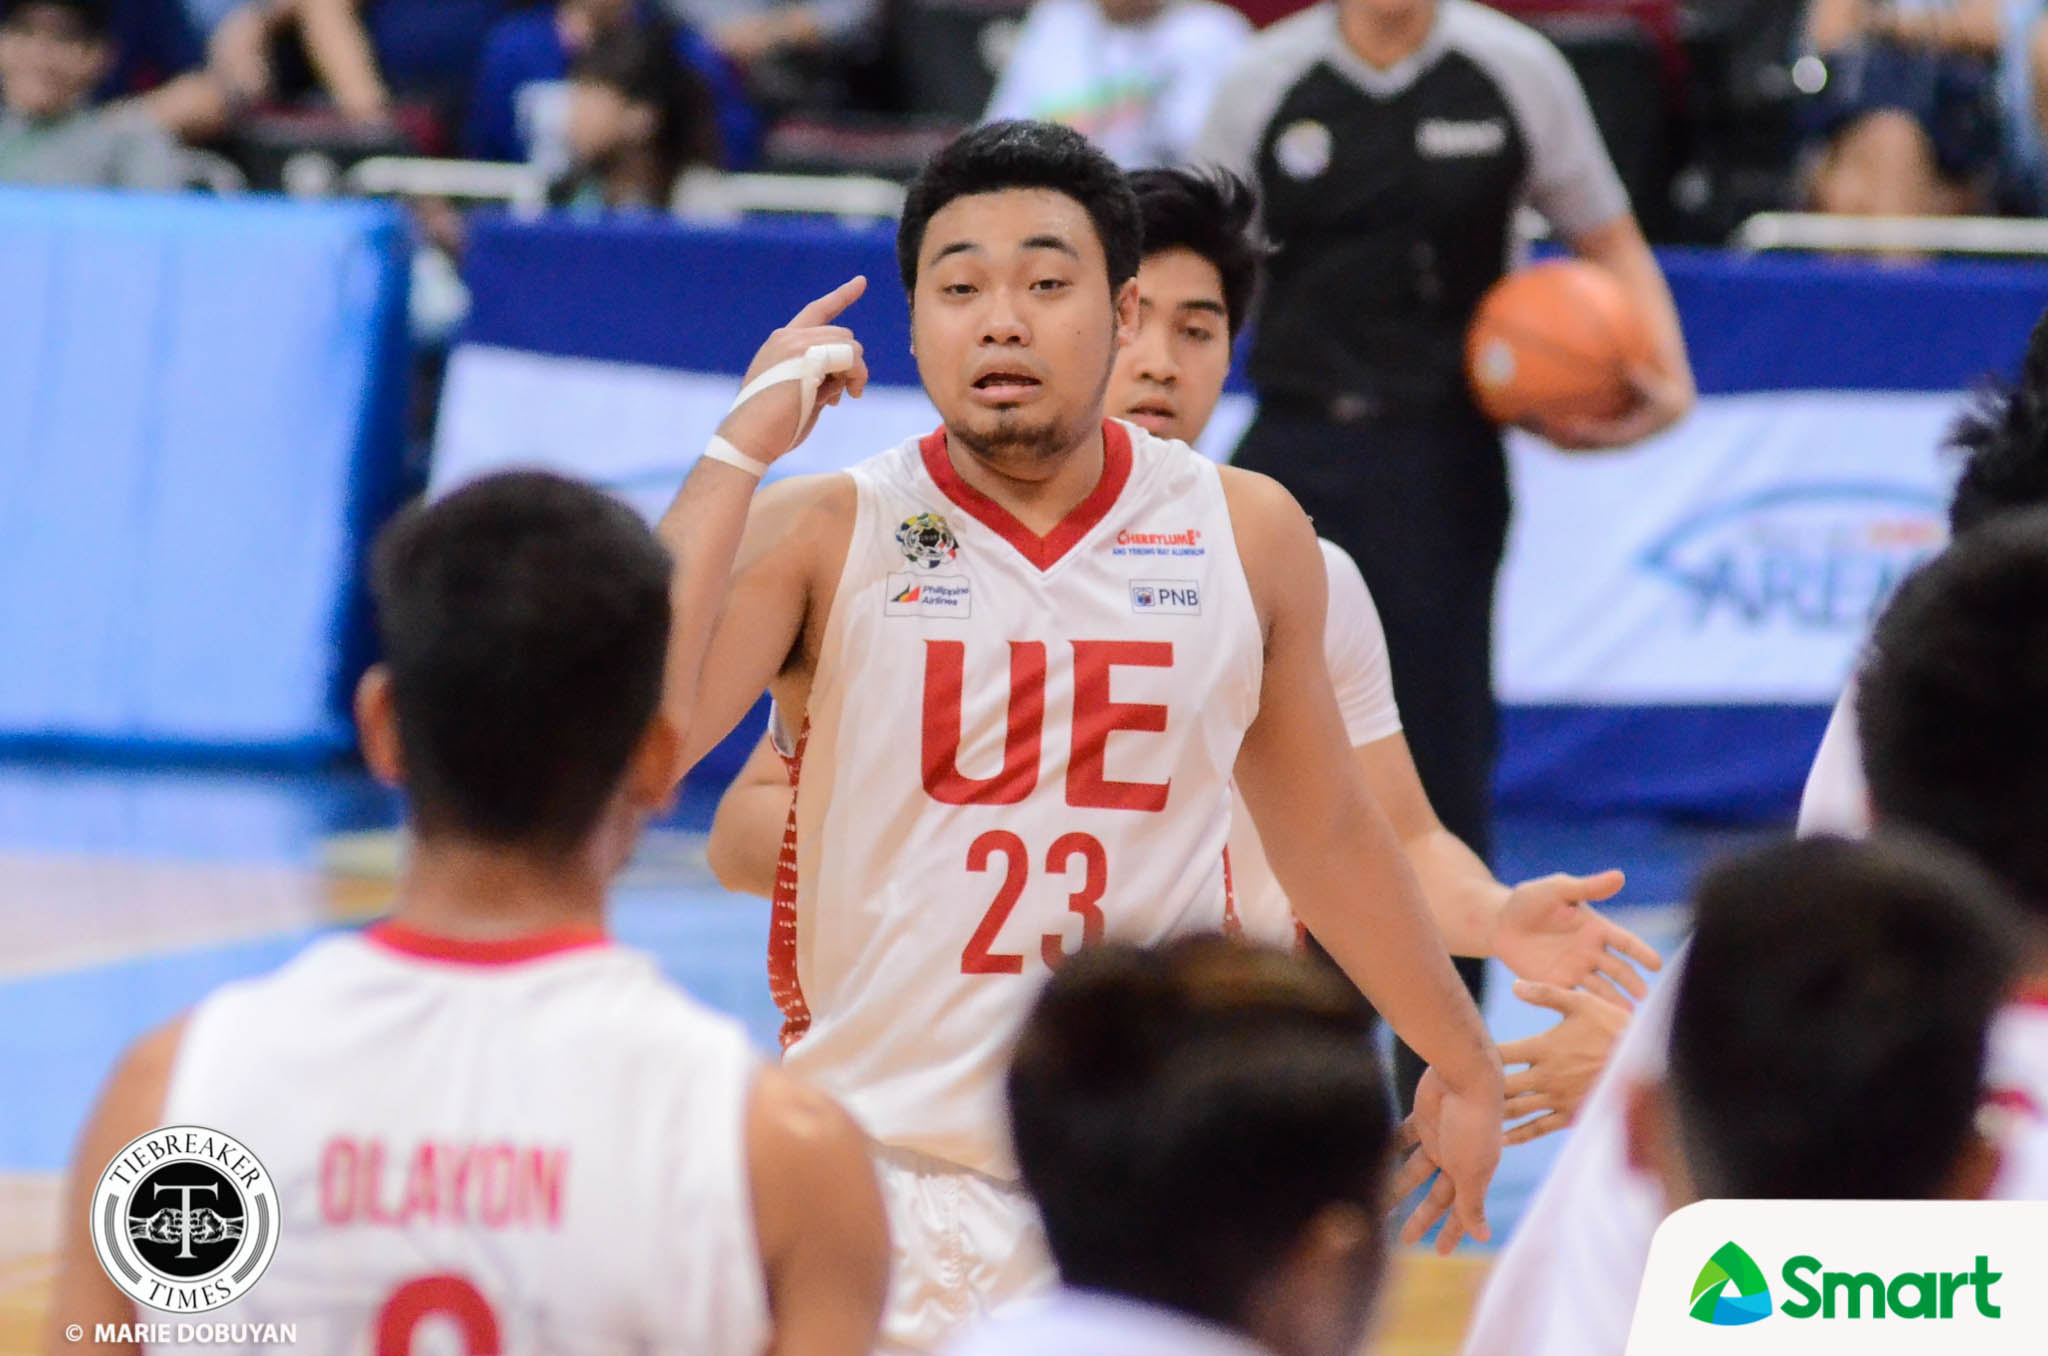 Philippine Sports News - Tiebreaker Times SMART/Chooks-to-Go Player of the Week Alvin Pasaol deflects credit to teammates Basketball News UAAP UE  UE Men's Basketball UAAP Season 80 Men's Basketball UAAP Season 80 Matt Nieto Jerrick Ahanmisi Chooks-to-Go Ben Mbala Alvin Pasaol